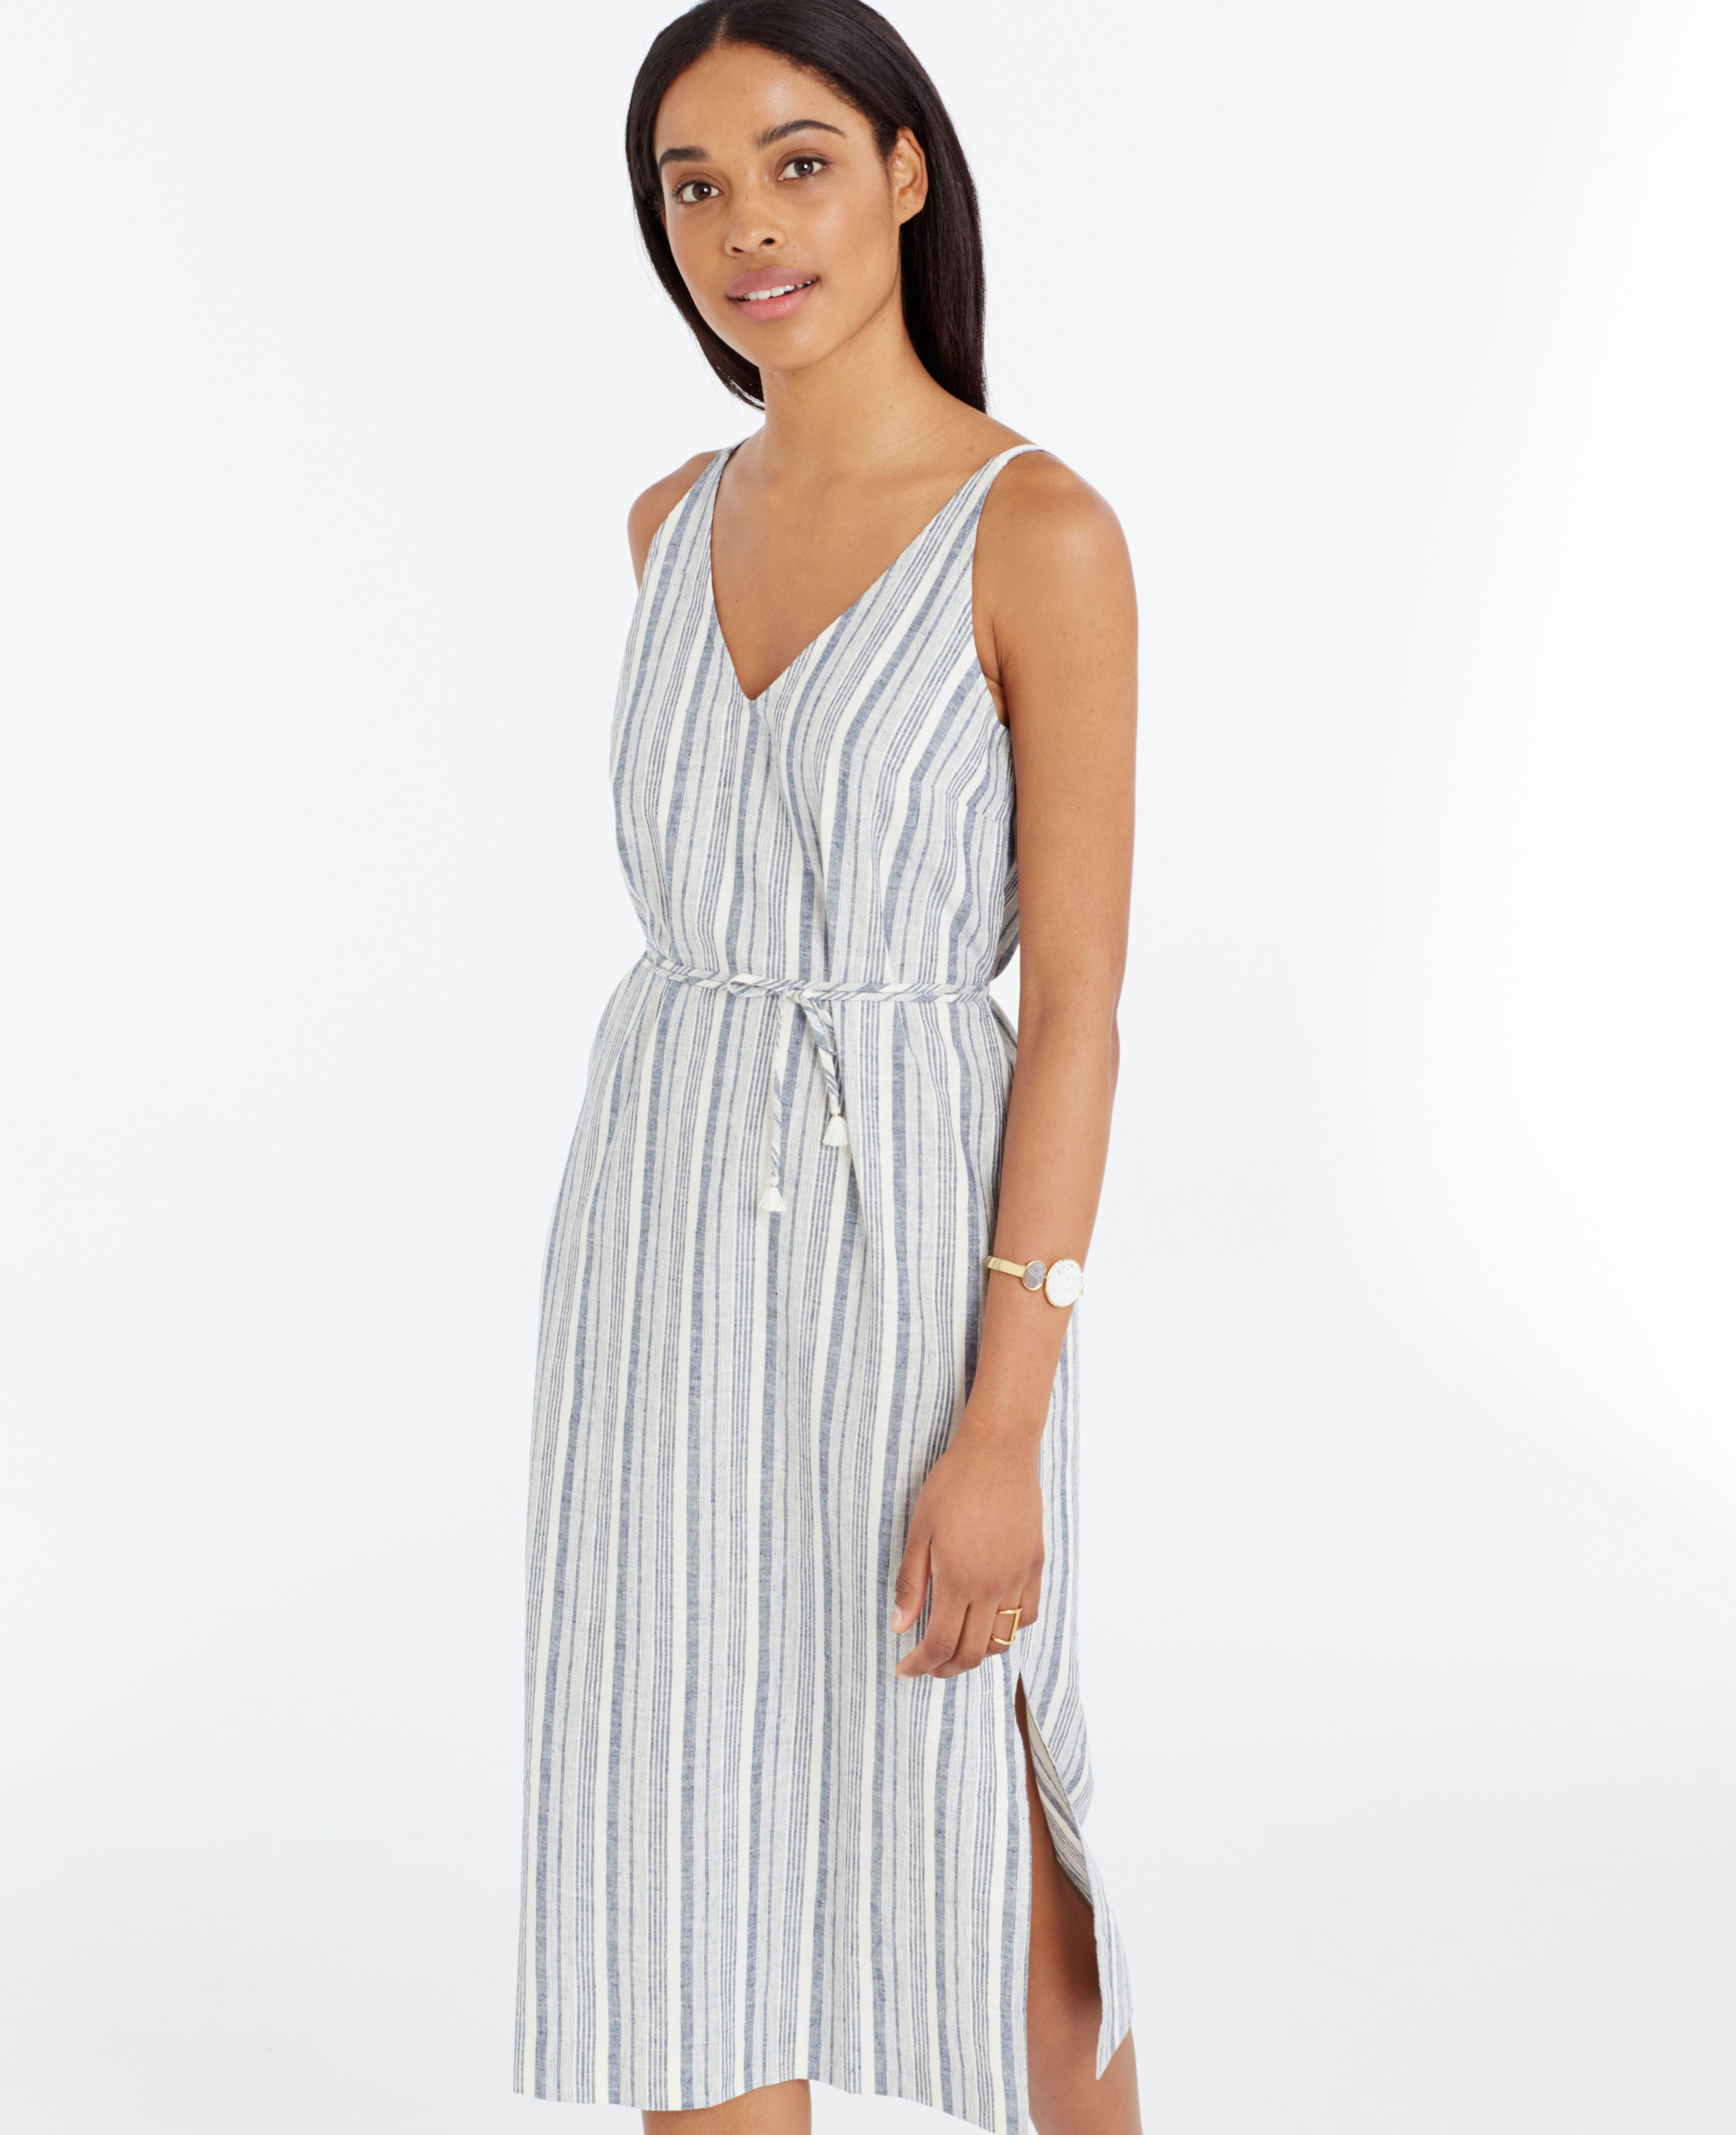 c1daf5547 Ann Taylor Petite Striped Linen Cotton Midi Dress in Blue - Lyst